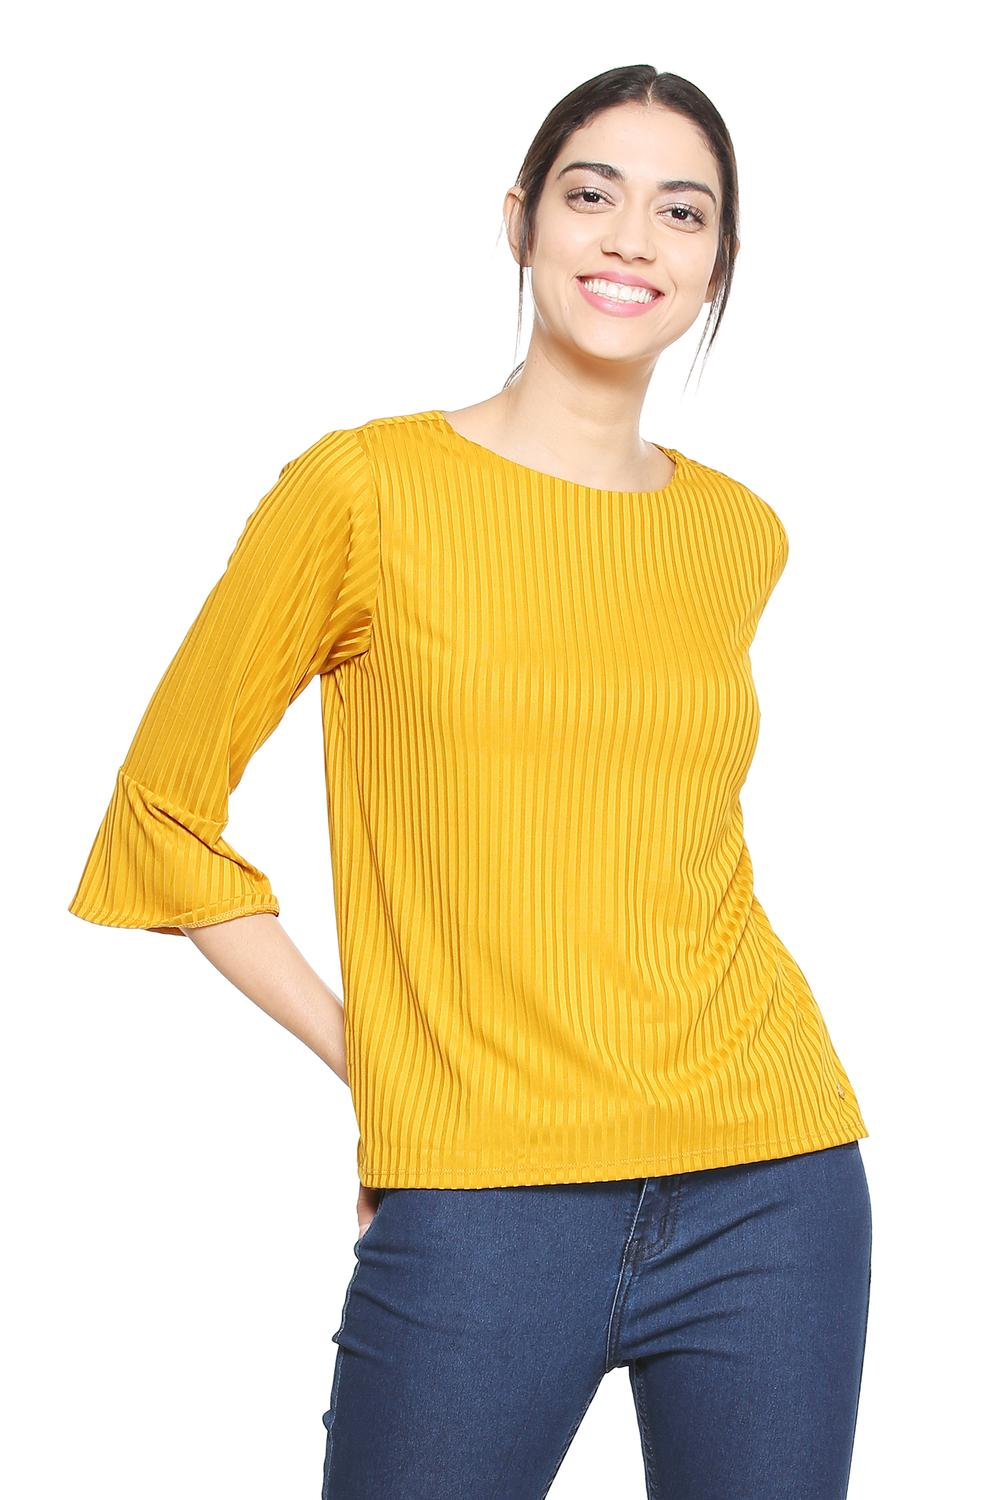 3968f431 Solly Tees & Tops, Allen Solly Yellow Top for Women at Allensolly.com